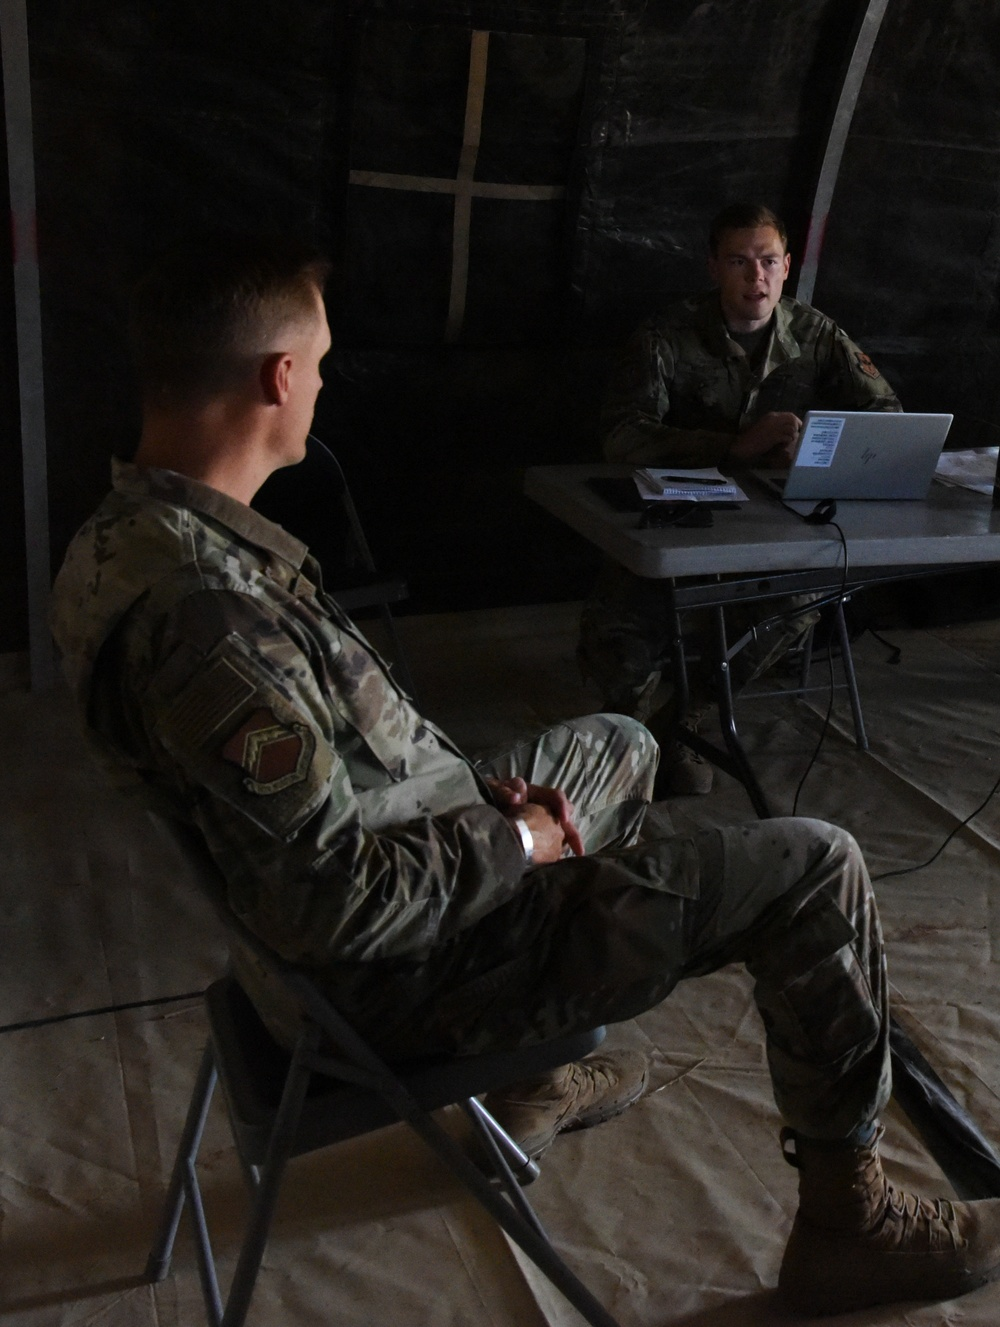 56 CONS simulates austere environment to enhance readiness